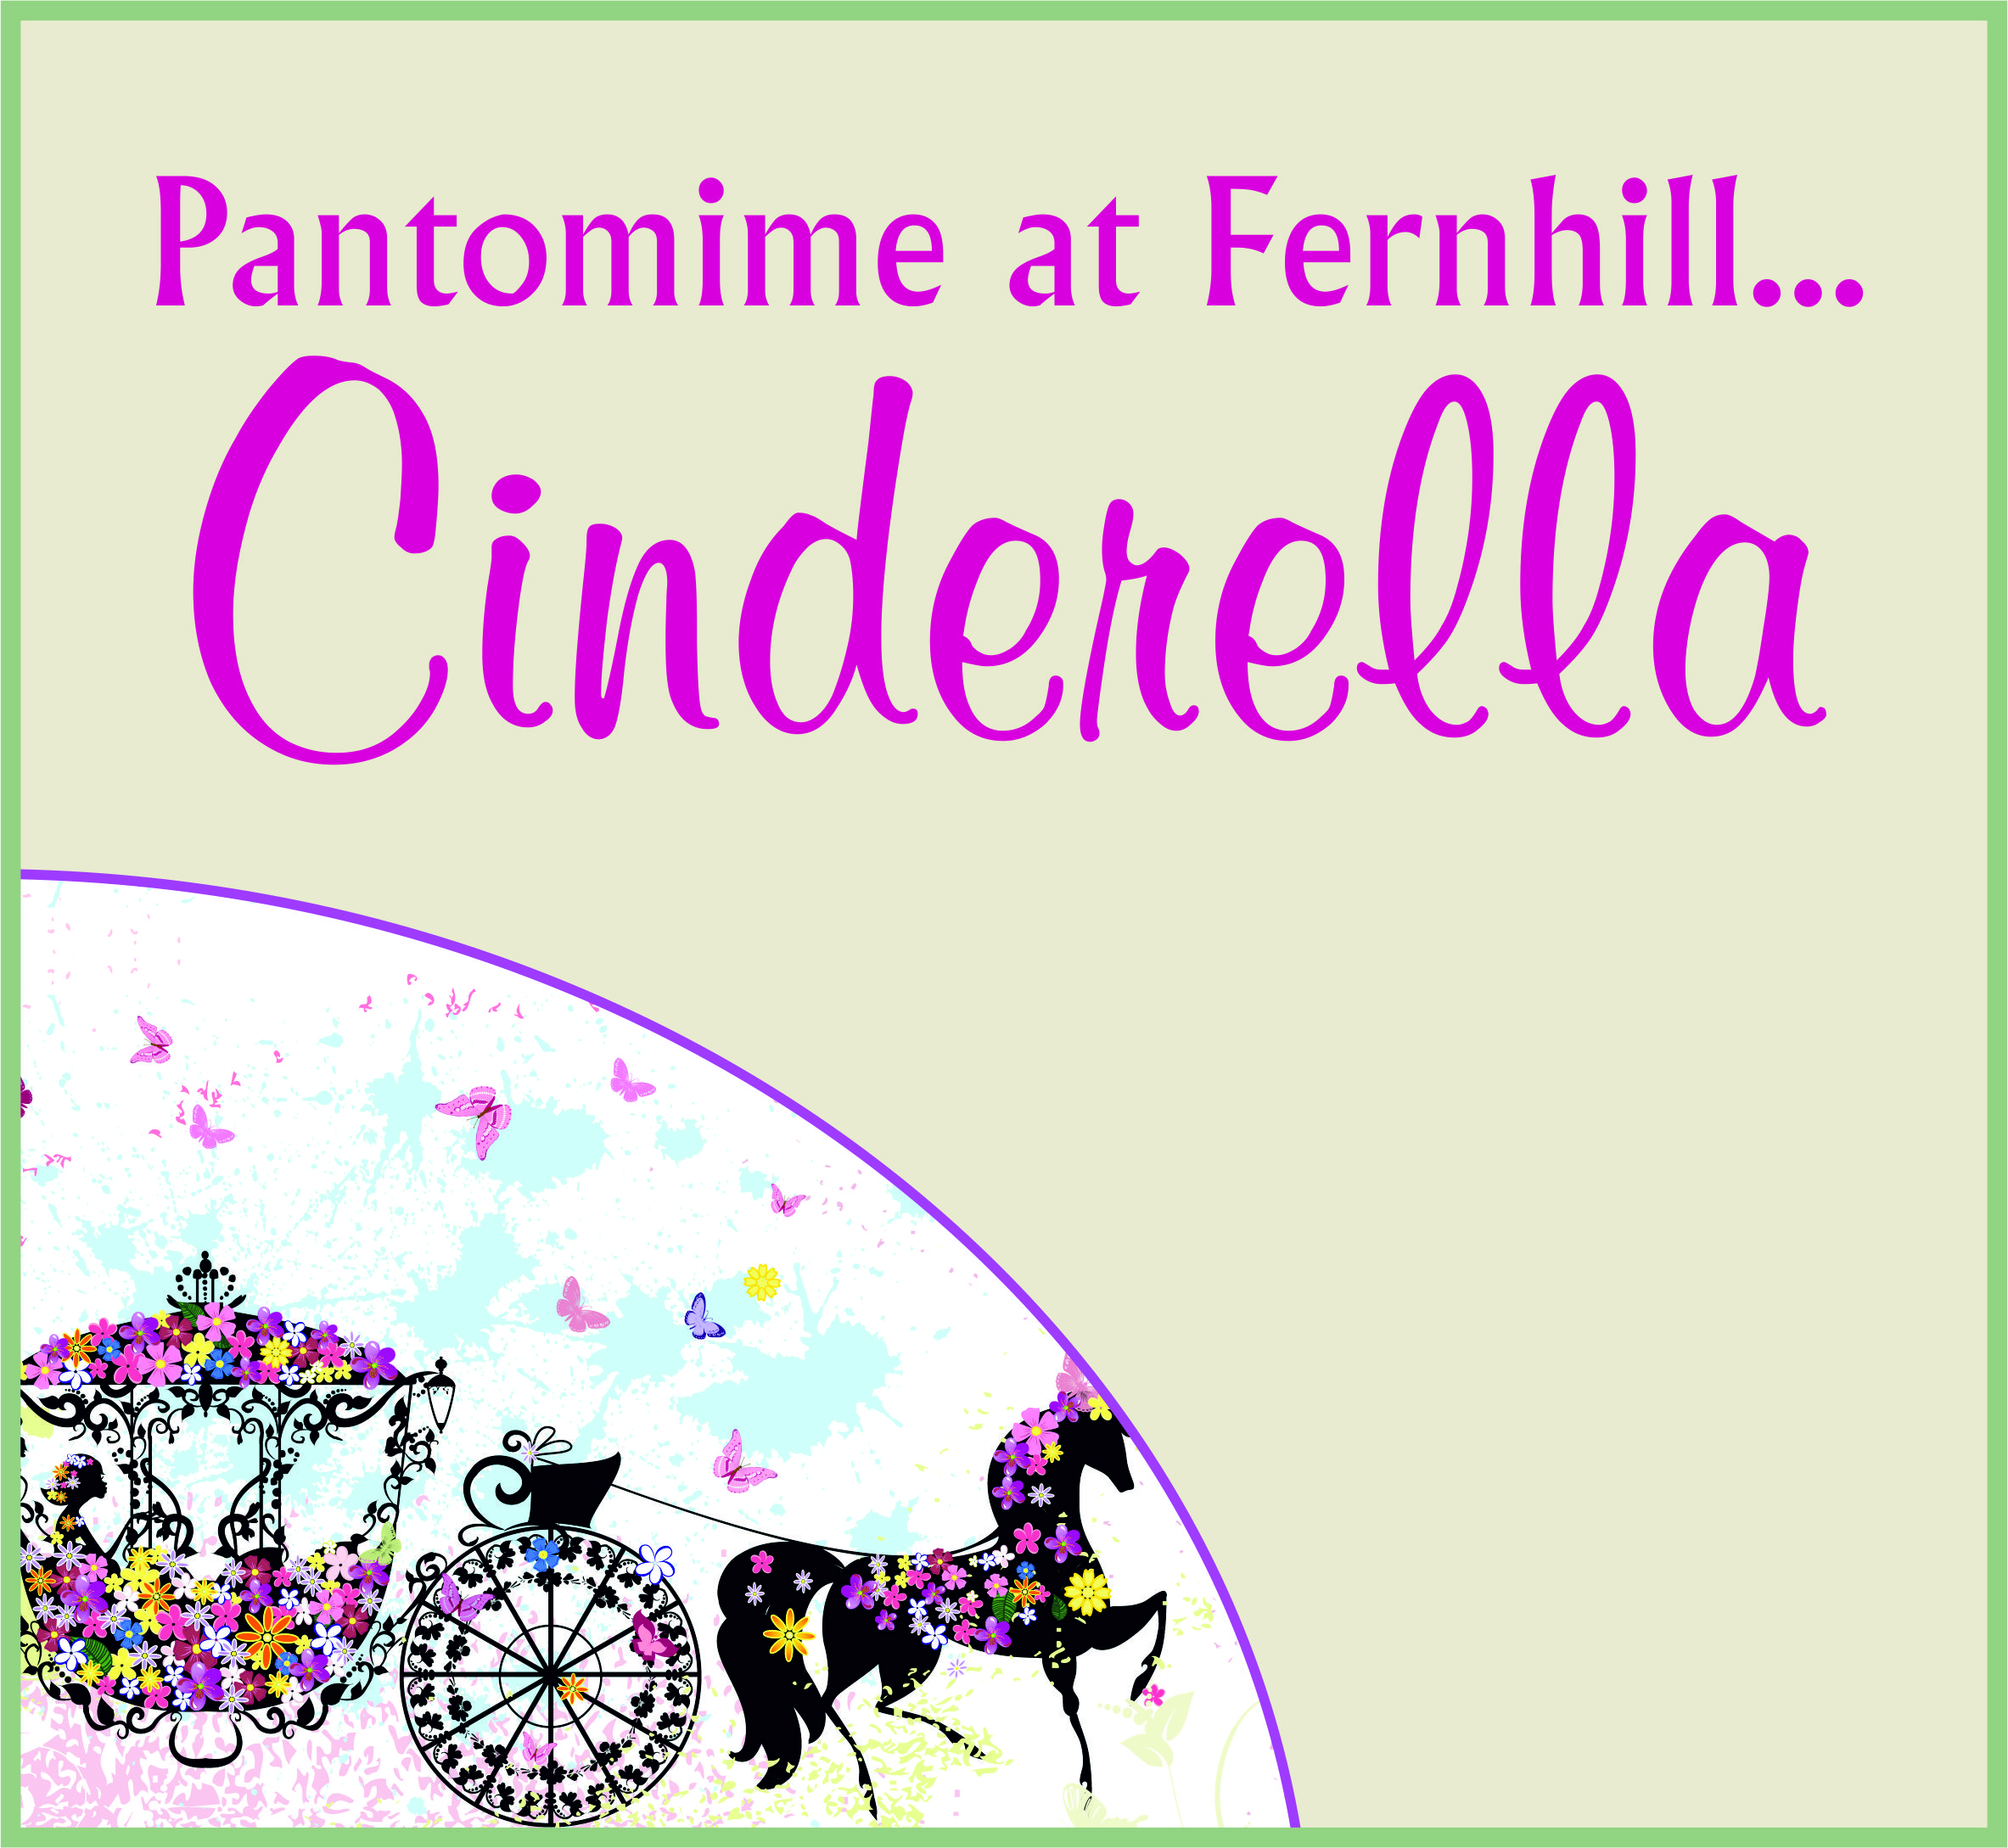 Events Template panto FH